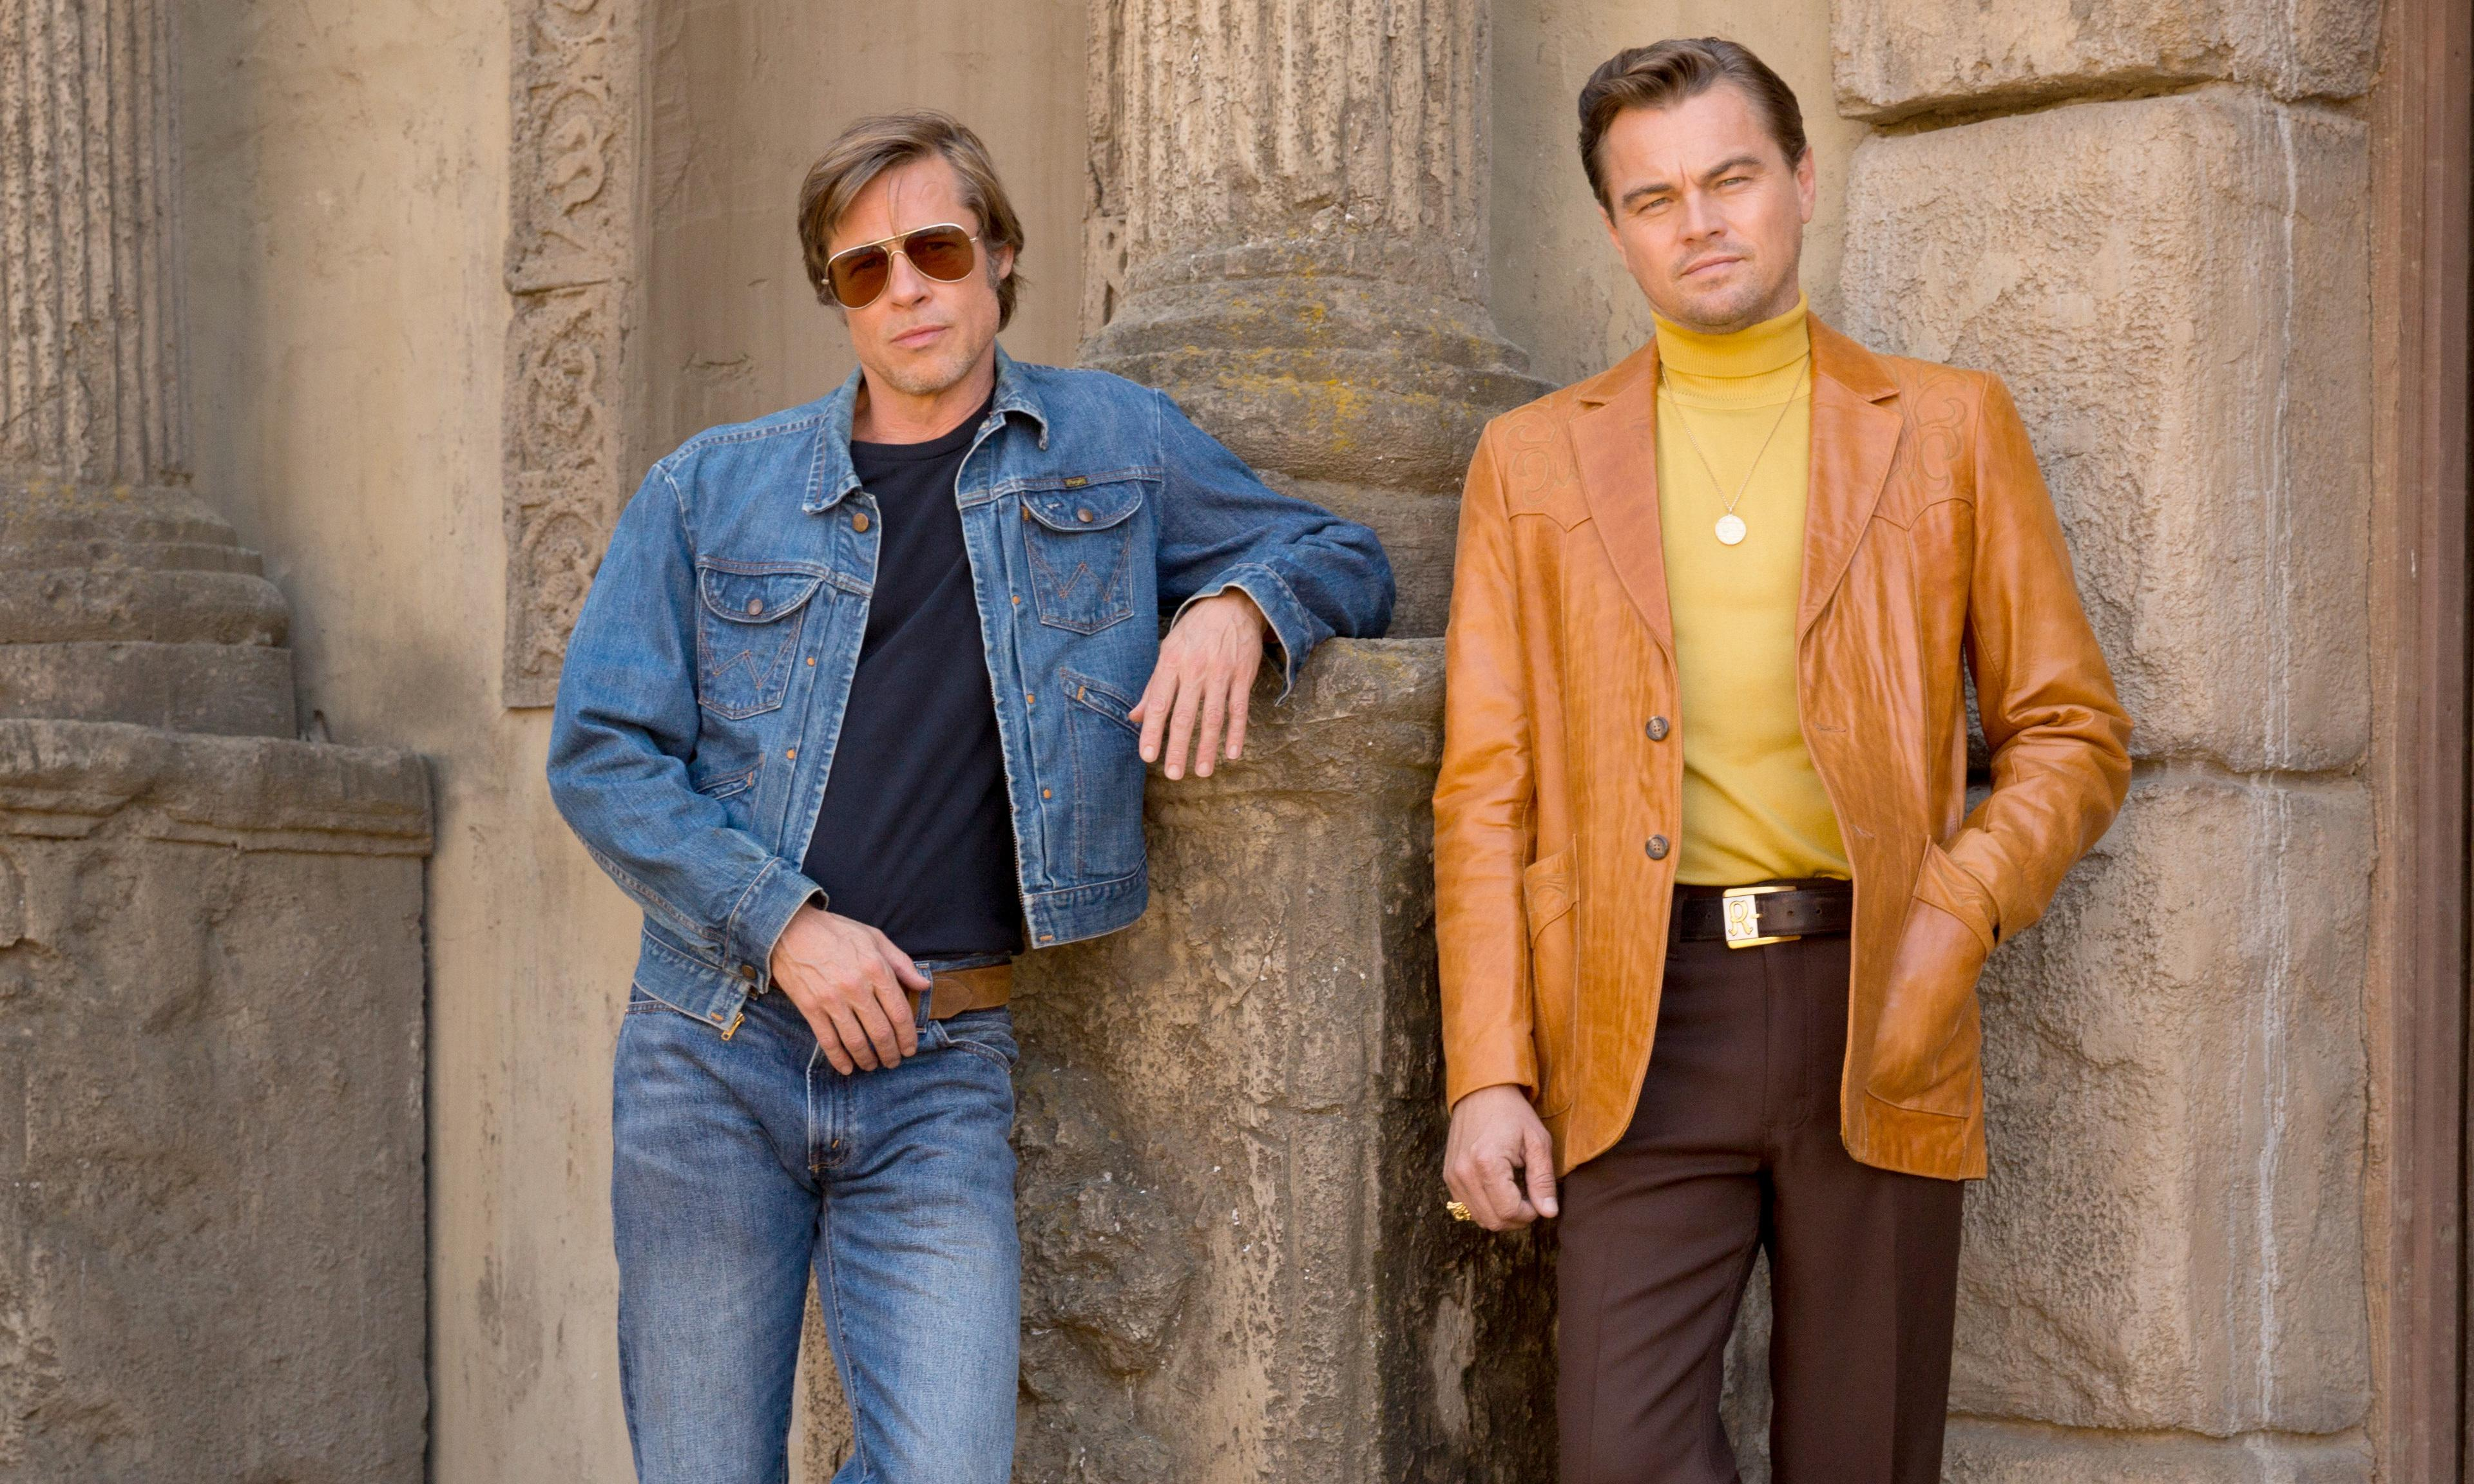 Tarantino set to premiere Once Upon a Time in Hollywood at Cannes